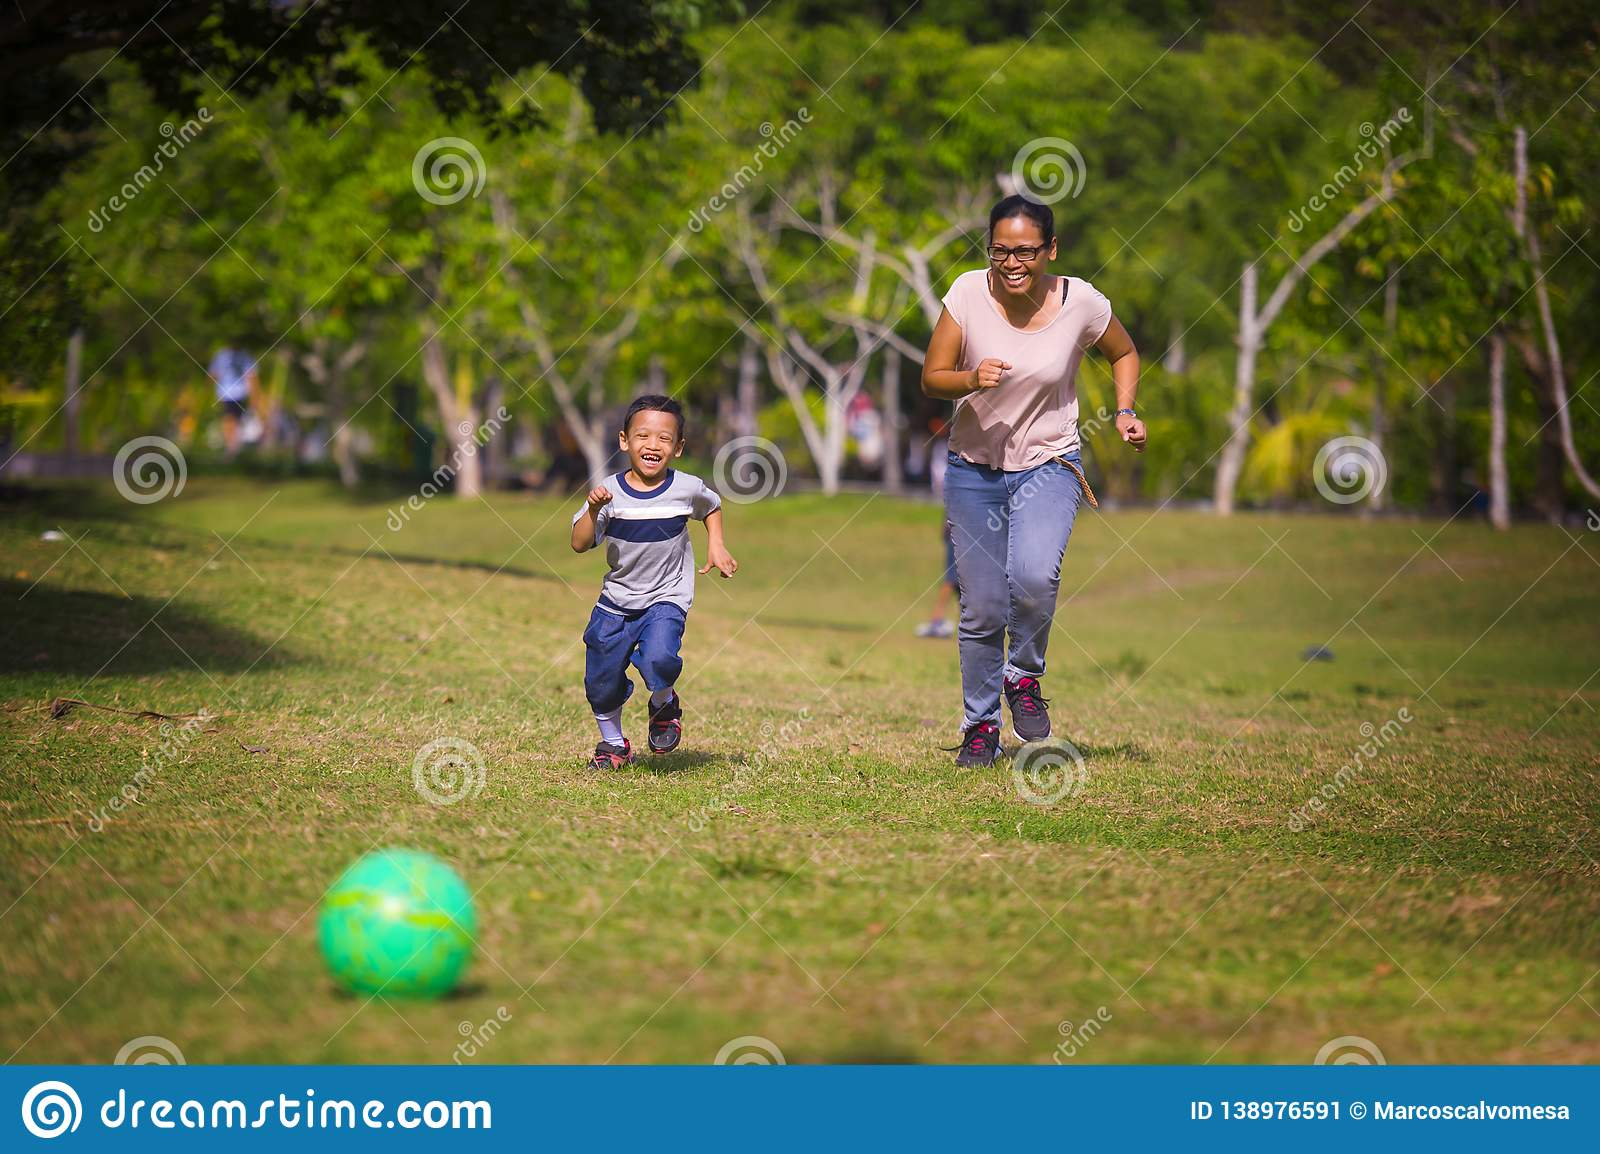 Happy Asian Indonesian mother playing football with little 5 years old son running together excited laughing having fun in soccer. Portrait in city park of happy stock image